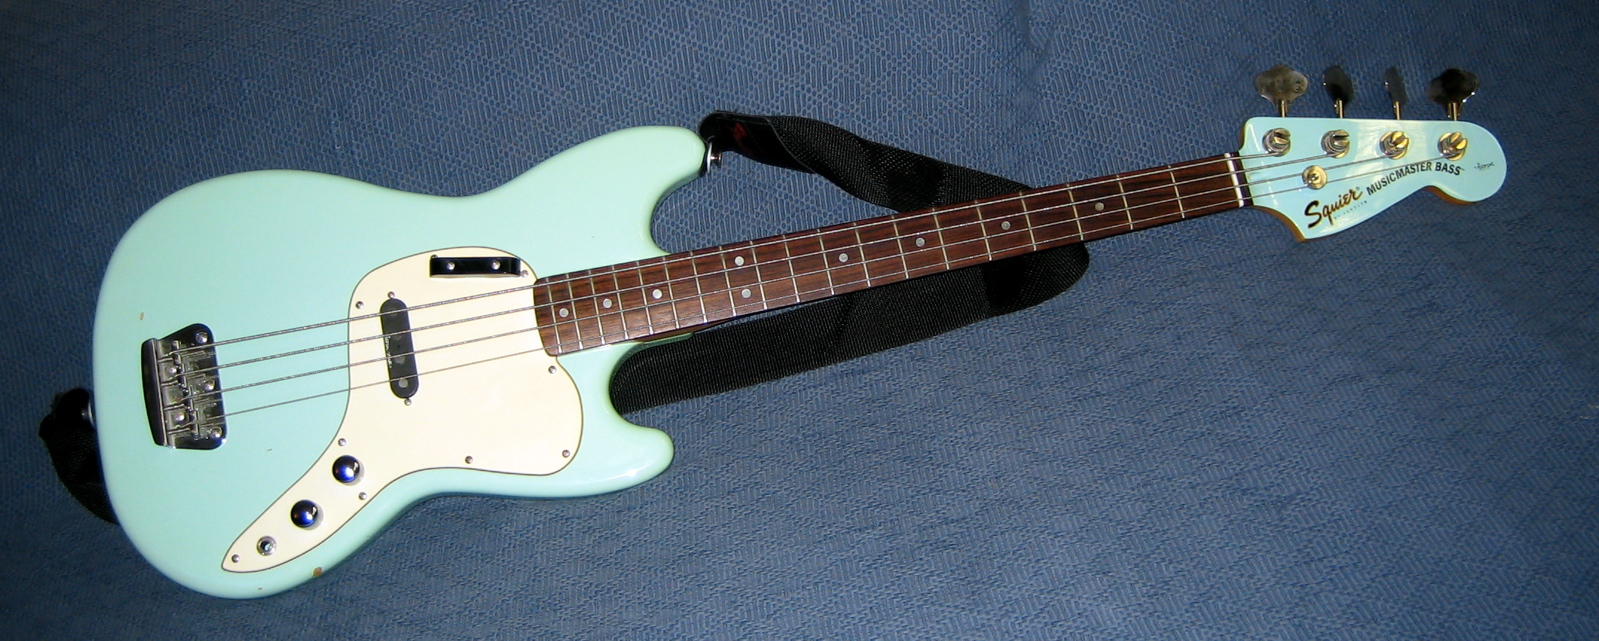 The Squier Musicmaster bass